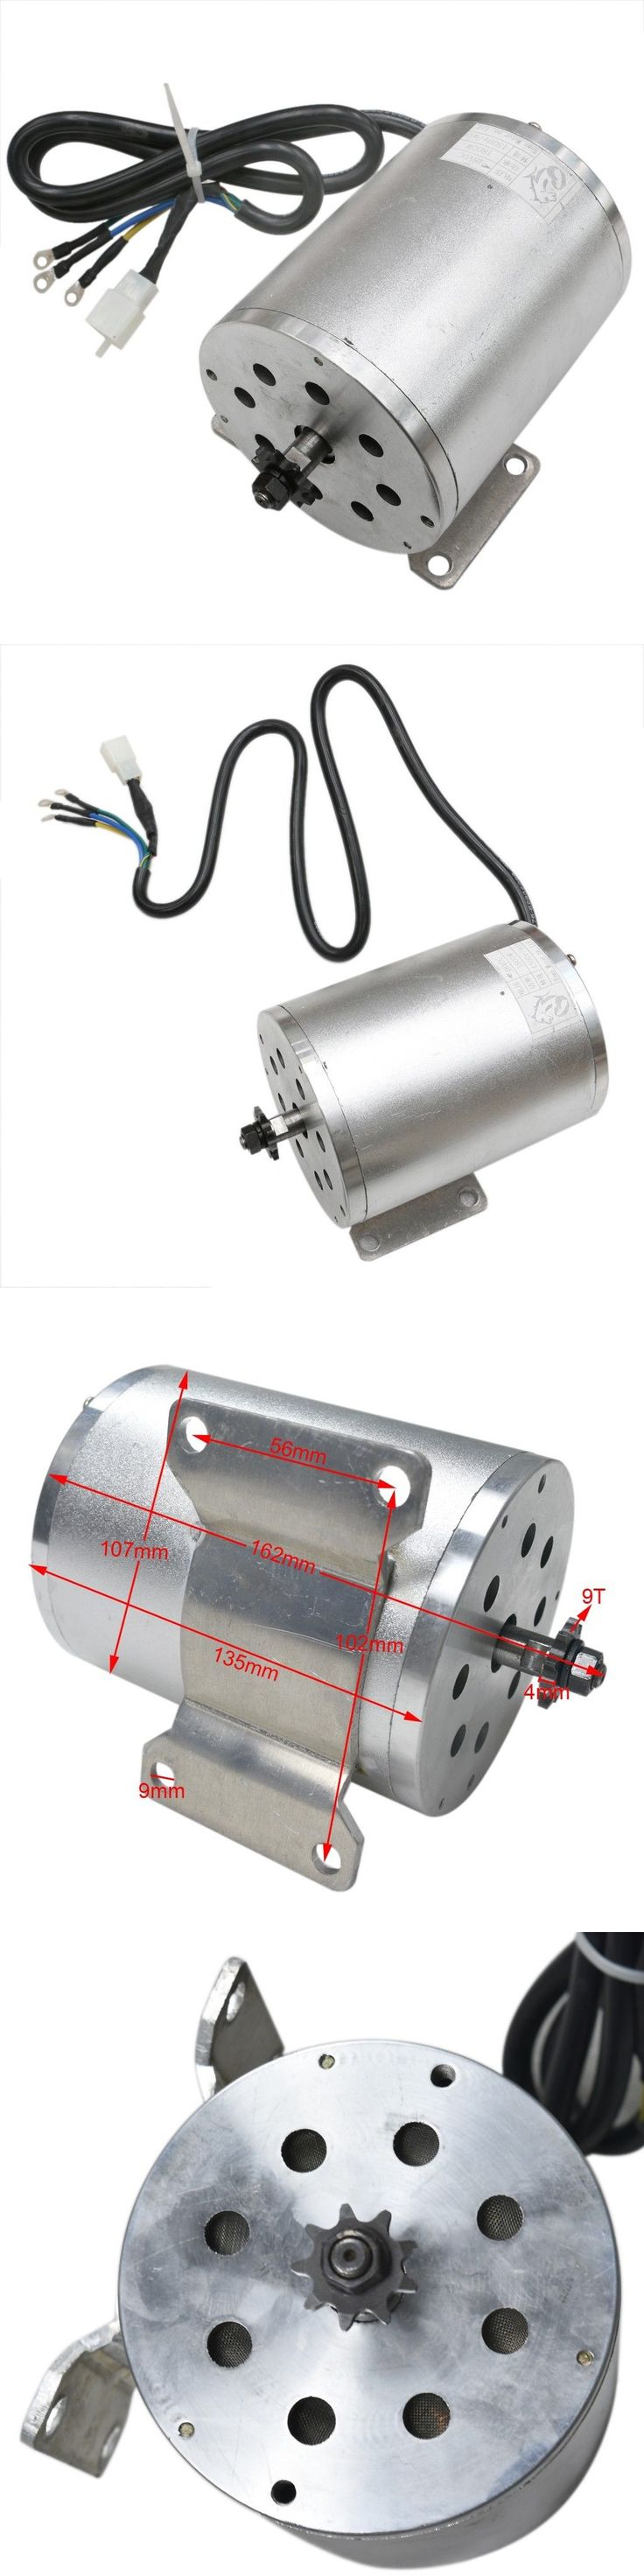 Parts and Accessories 11332: 1800W 48V Brushless Dc Motor For Electric Bicycle Go-Kart Buggy Atv -> BUY IT NOW ONLY: $119.95 on eBay!